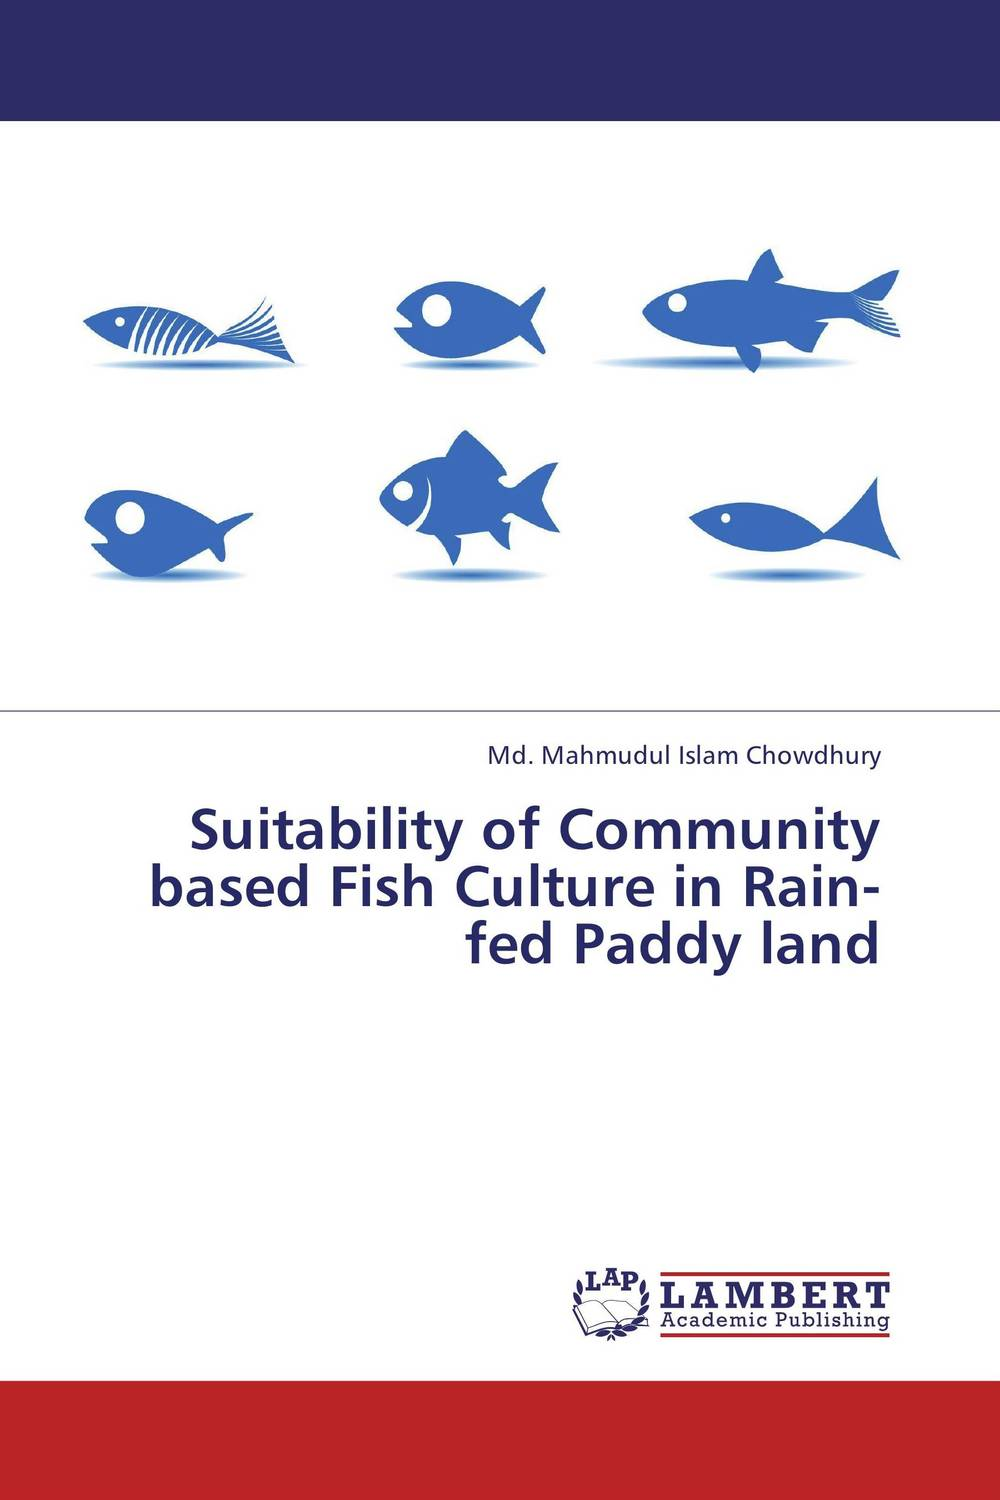 Suitability of Community based Fish Culture in Rain-fed Paddy land evaluation of land suitability for rice production in amhara region